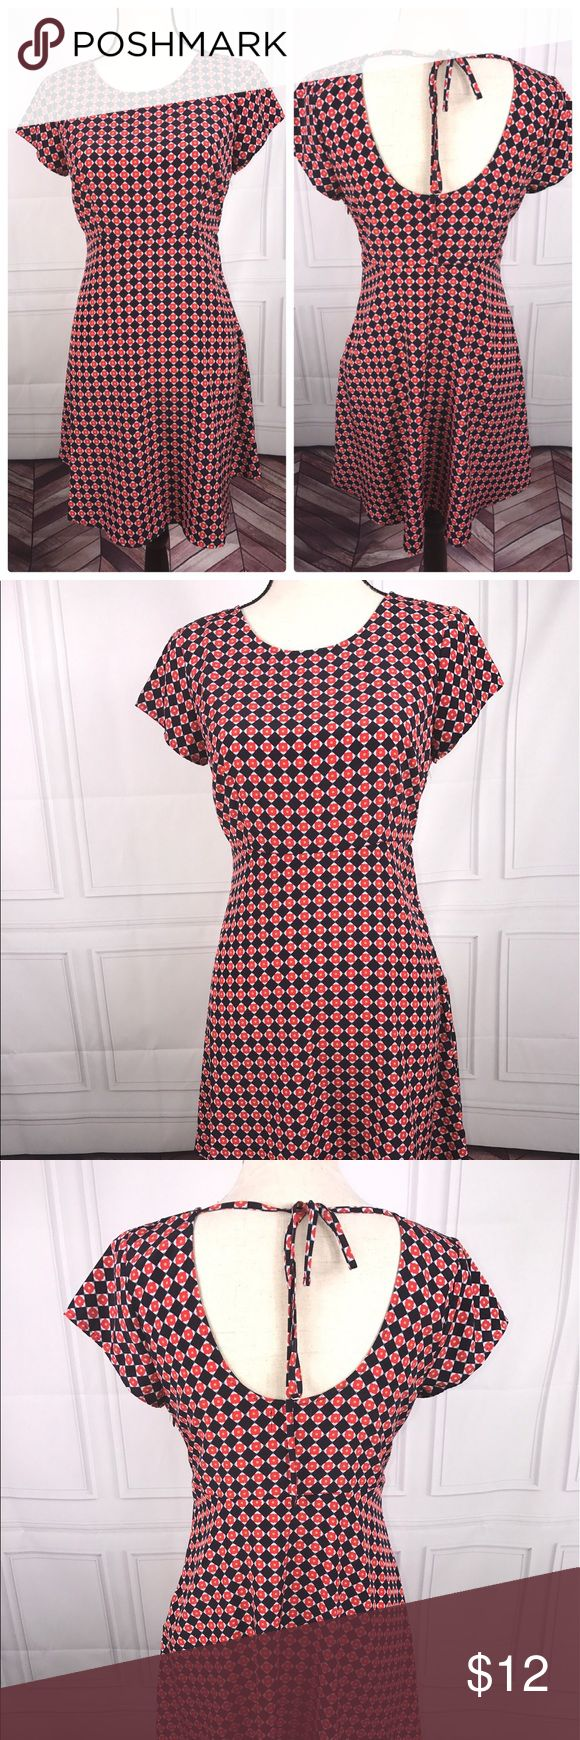 Old Navy XS Navy Blue Red White Short Sleeve Dress Old Navy XS Navy Blue Red White Short Sleeve Dress   Very good used condition   See pictures for additional details, flaws (if any), fabric content, cleaning instructions and measurements.   Thank you for looking at my store! Old Navy Dresses